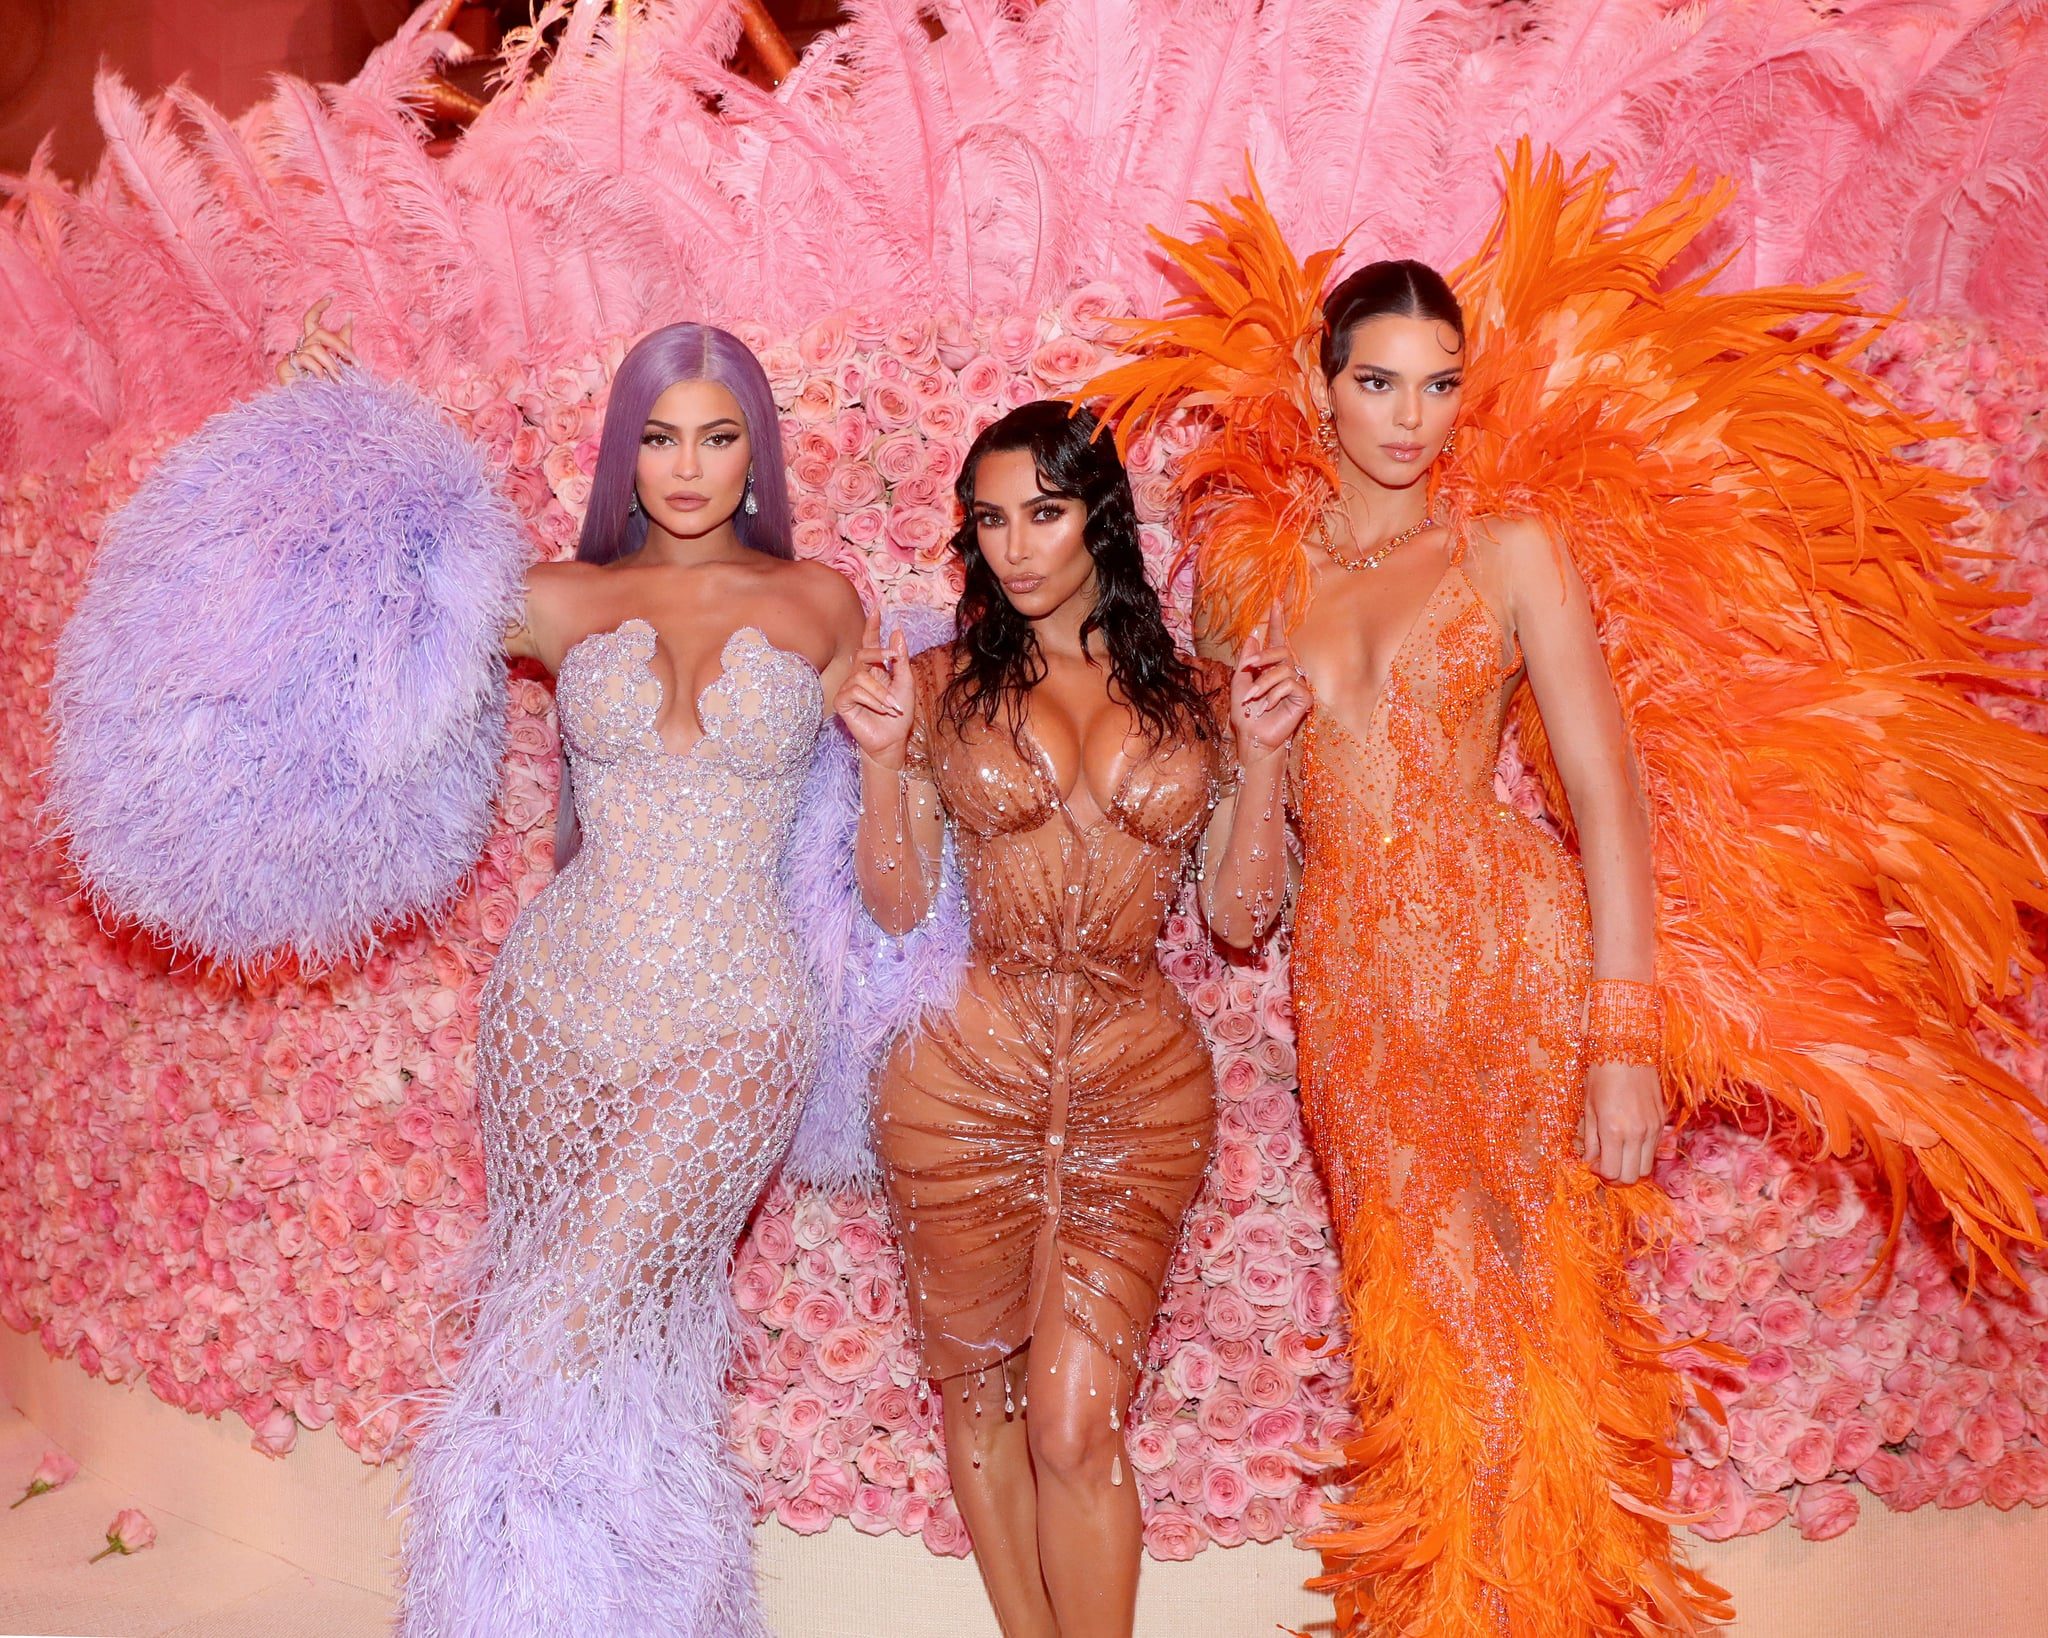 (EXCLUSIVE COVERAGE, SPECIAL RATES APPLY) Kylie Jenner, Kim Kardashian West and Kendall Jenner attend The 2019 Met Gala Celebrating Camp: Notes on Fashion at Metropolitan Museum of Art on May 06, 2019 in New York City. (Photo by Kevin Tachman/MG19/Getty Images for The Met Museum/Vogue)